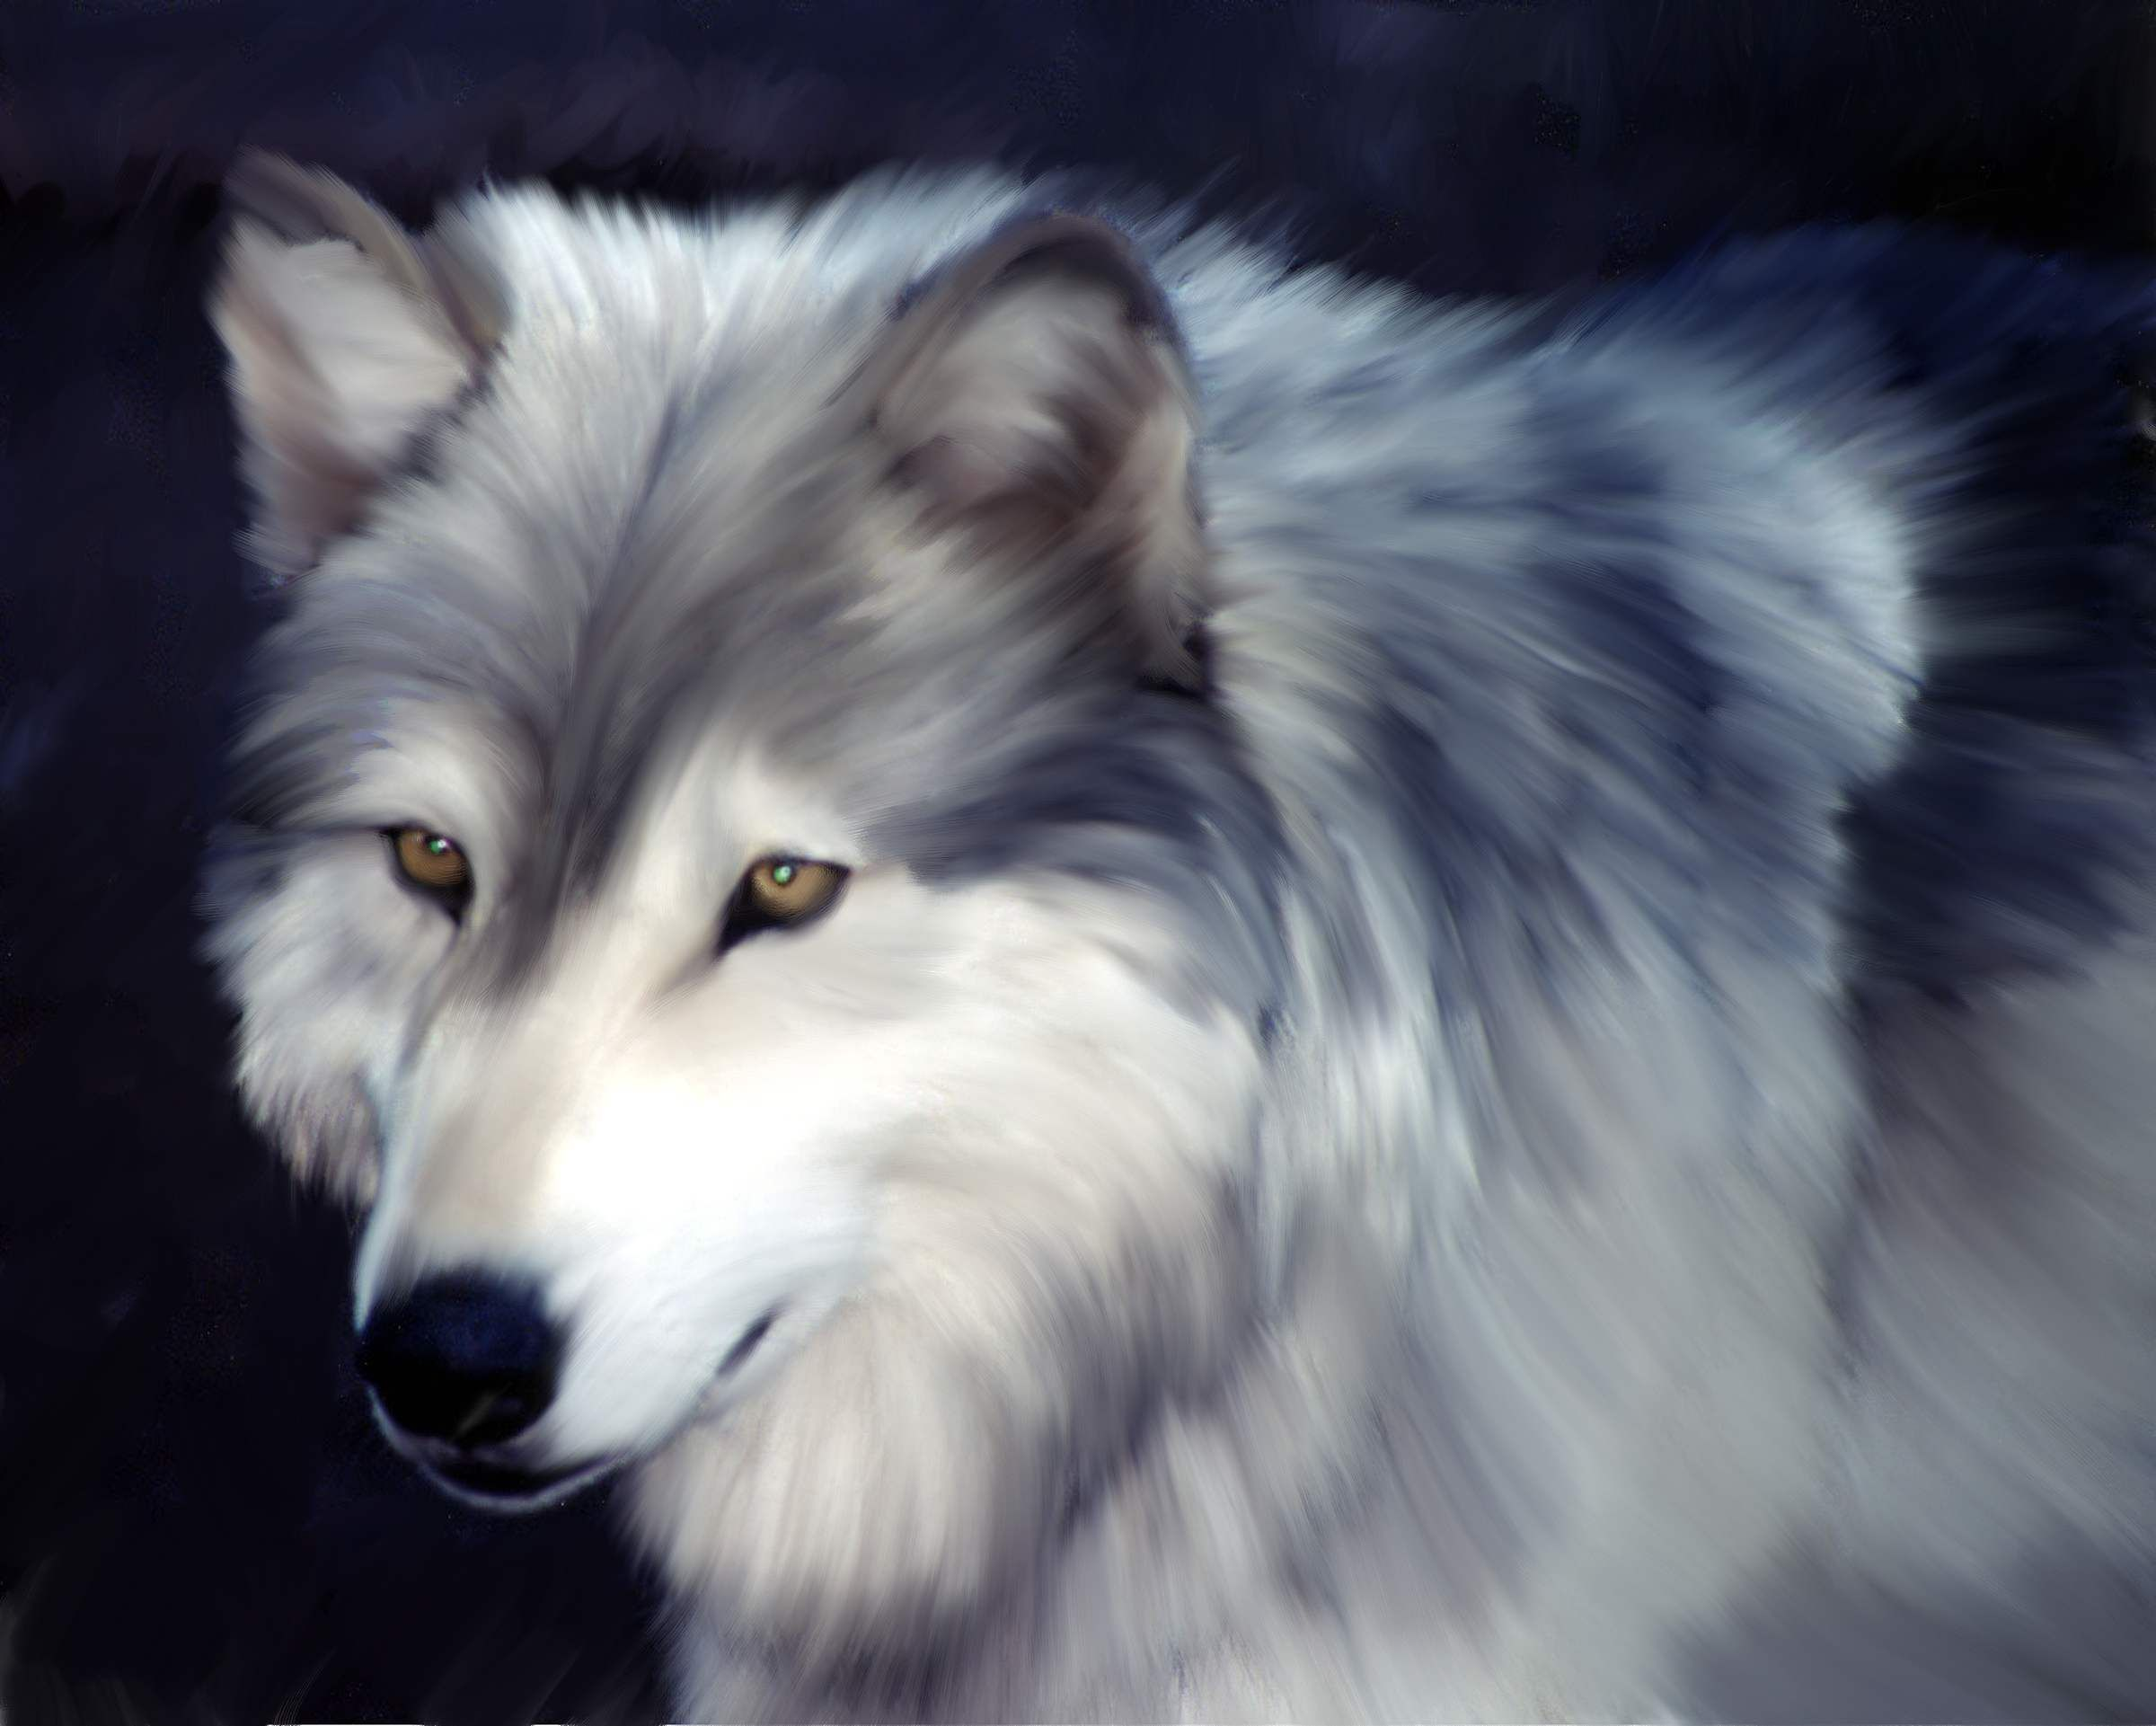 Grey Wolf  Digital Media using Corel Painter  Prints available:   16x20  / 20x24  /  24x30  email arwillustration@comcast.net   for pricing